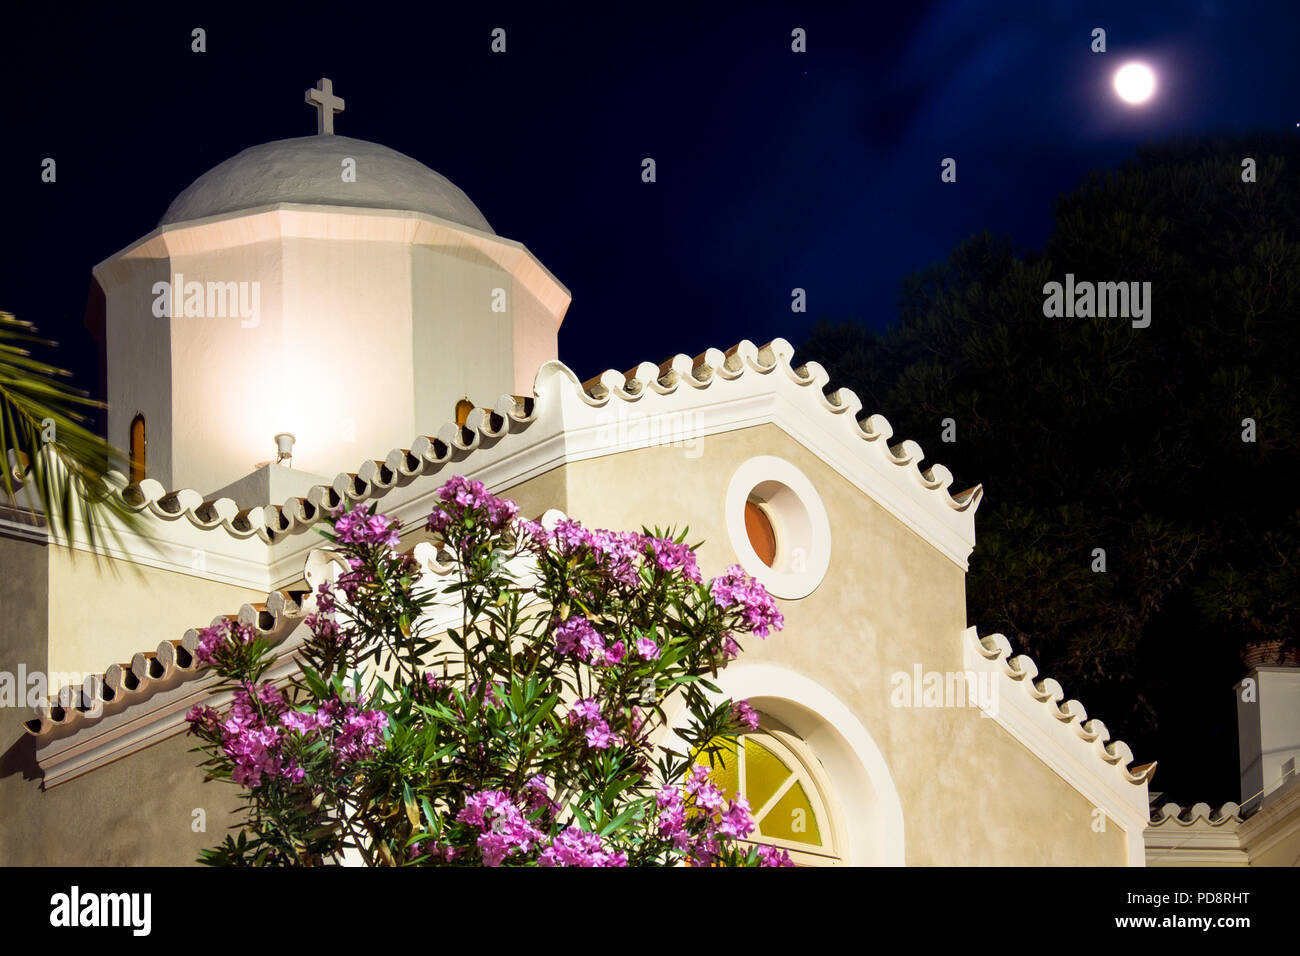 Agios Mamas church on the waterfront of  Spetses town. Situated near  between the new and old ports of the main town on the island. - Stock Image